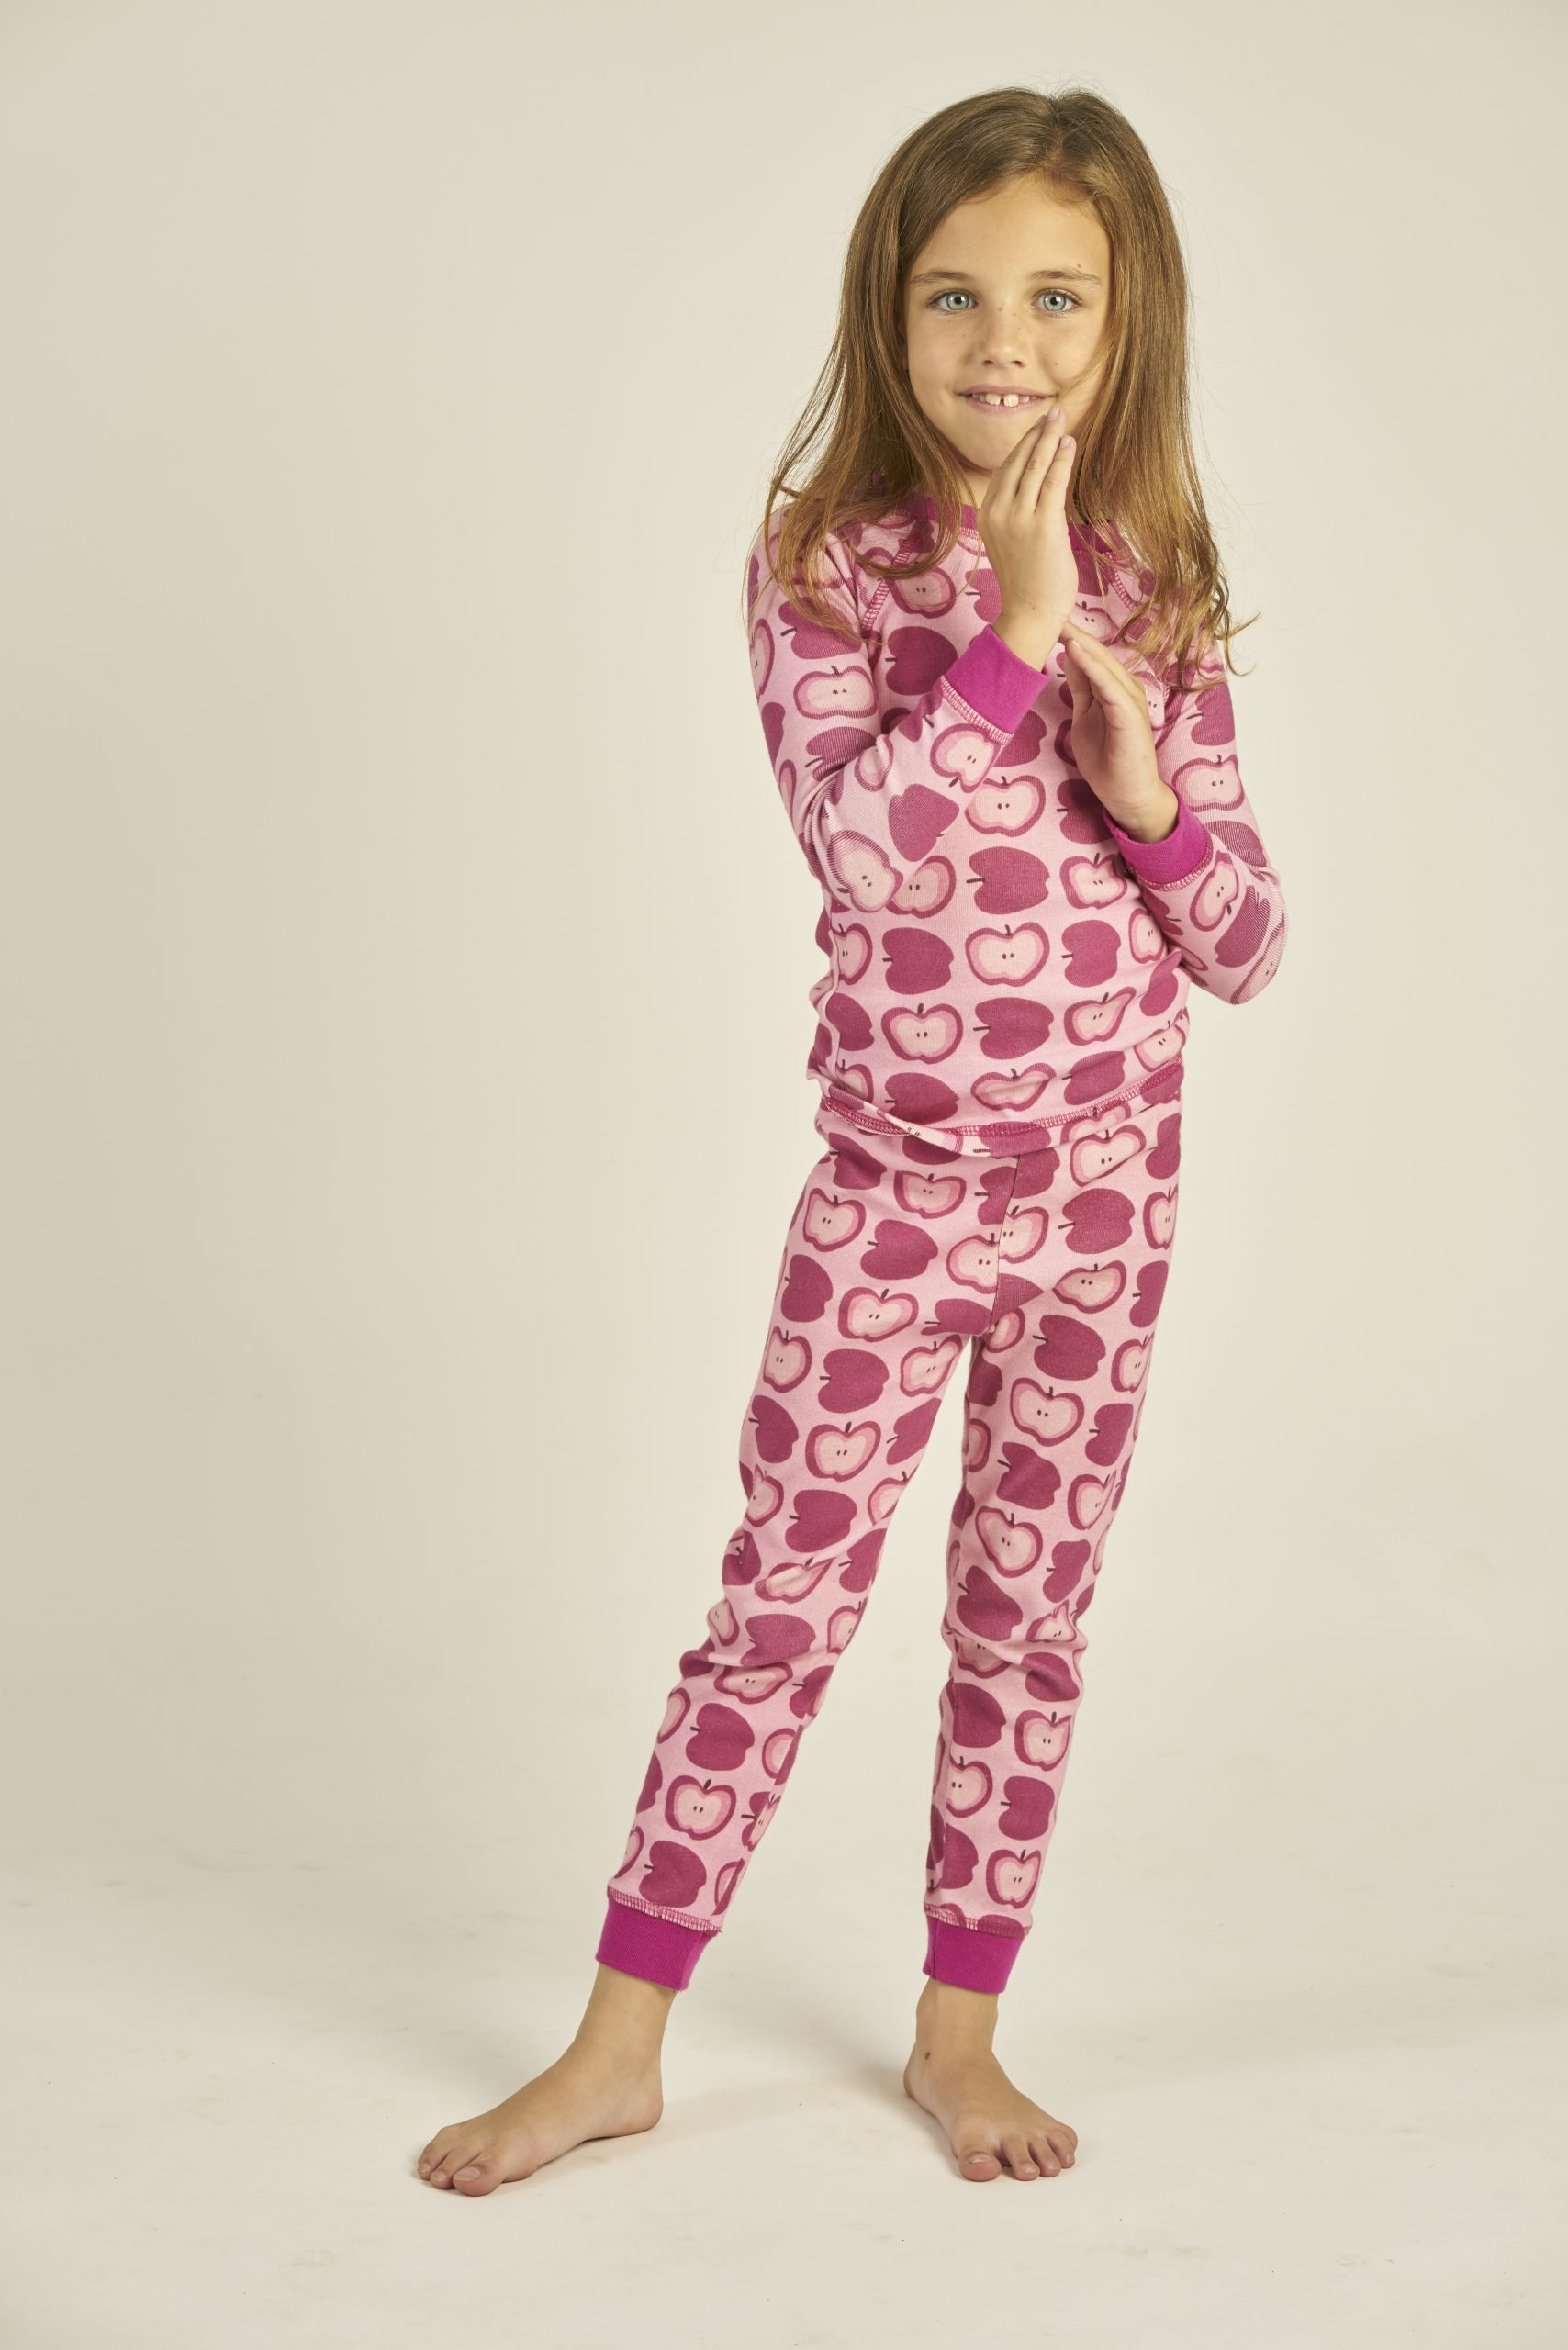 girl in pajamas